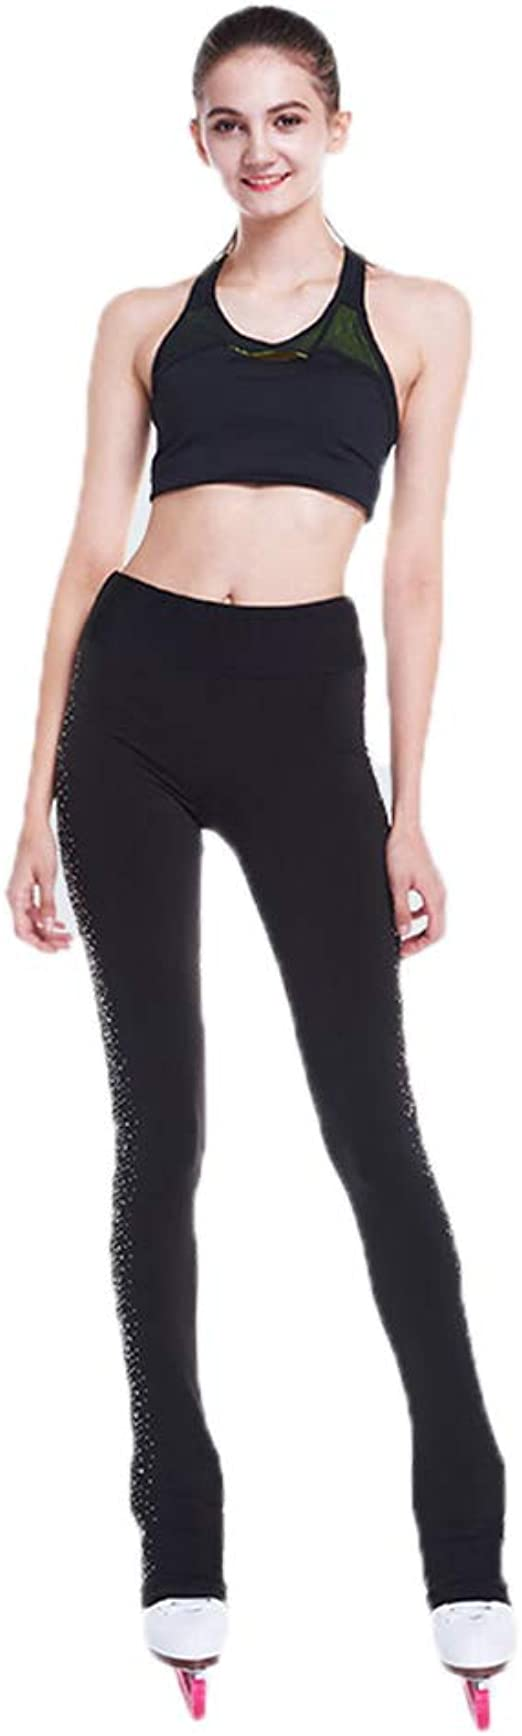 Details about  /Figure Skating Pants S103 Ribbonette Leggings 2 Colors Sizes Youth 6-8 to AL